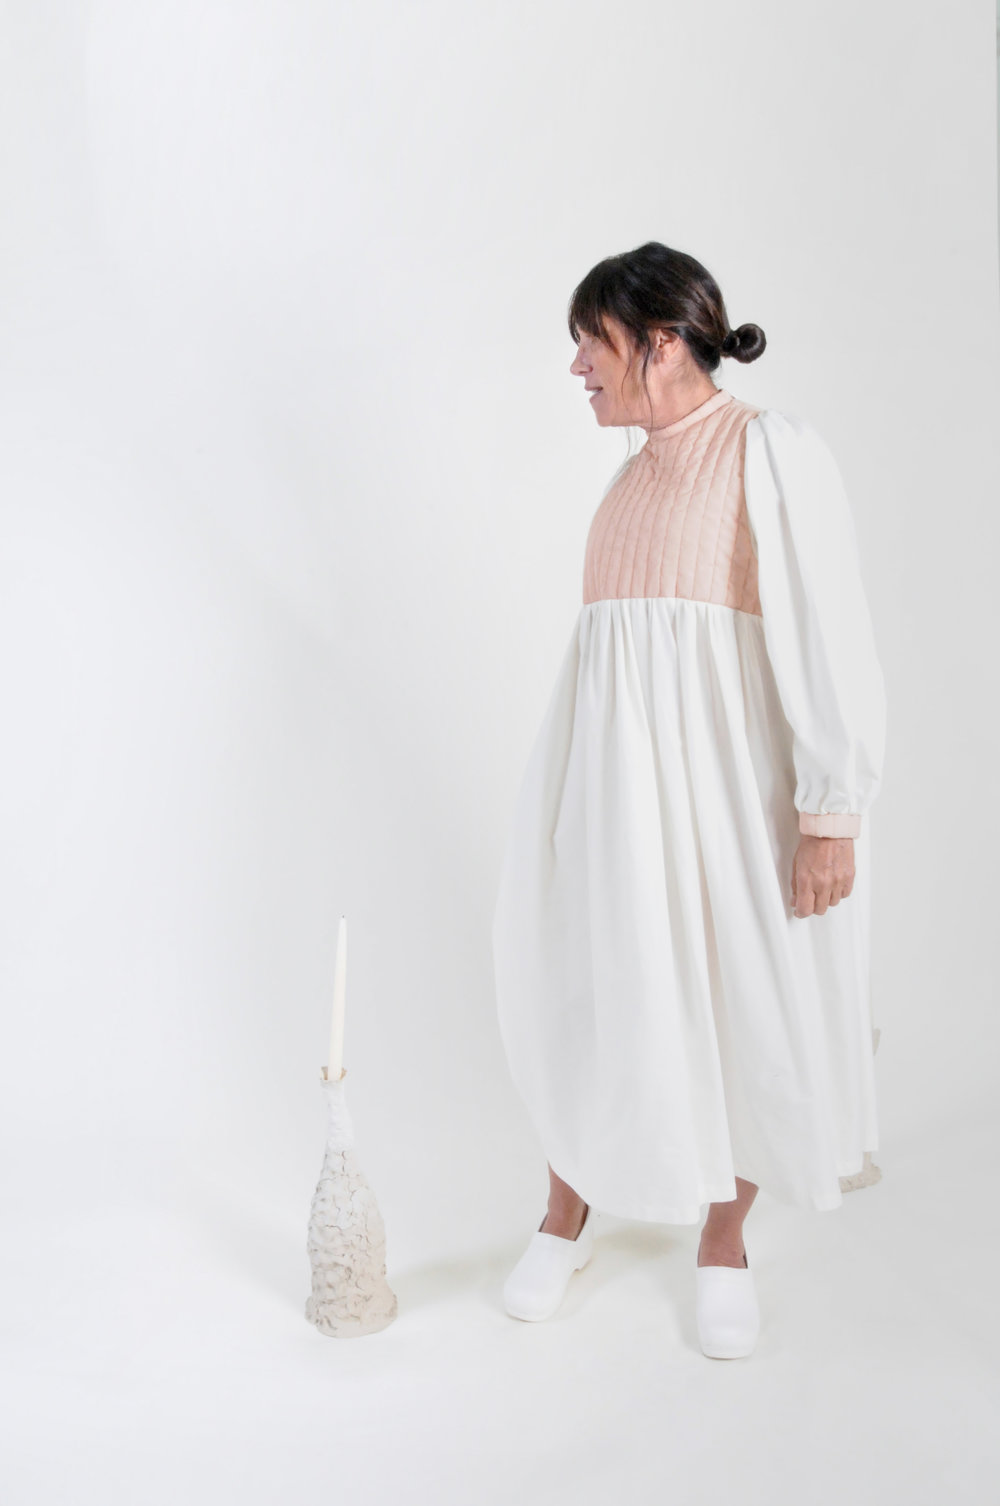 mom's quilted dress: blush and ivory - 0220COLOR : BLUSH AND IVORYFABRIC : DEADSTOCK QUILTED COTTON AND COTTON LAWNCONTENT: 100% COTTONWHOLESALE $124 / RETAIL $248SIZES : ONE SIZE / FITS XS - XL